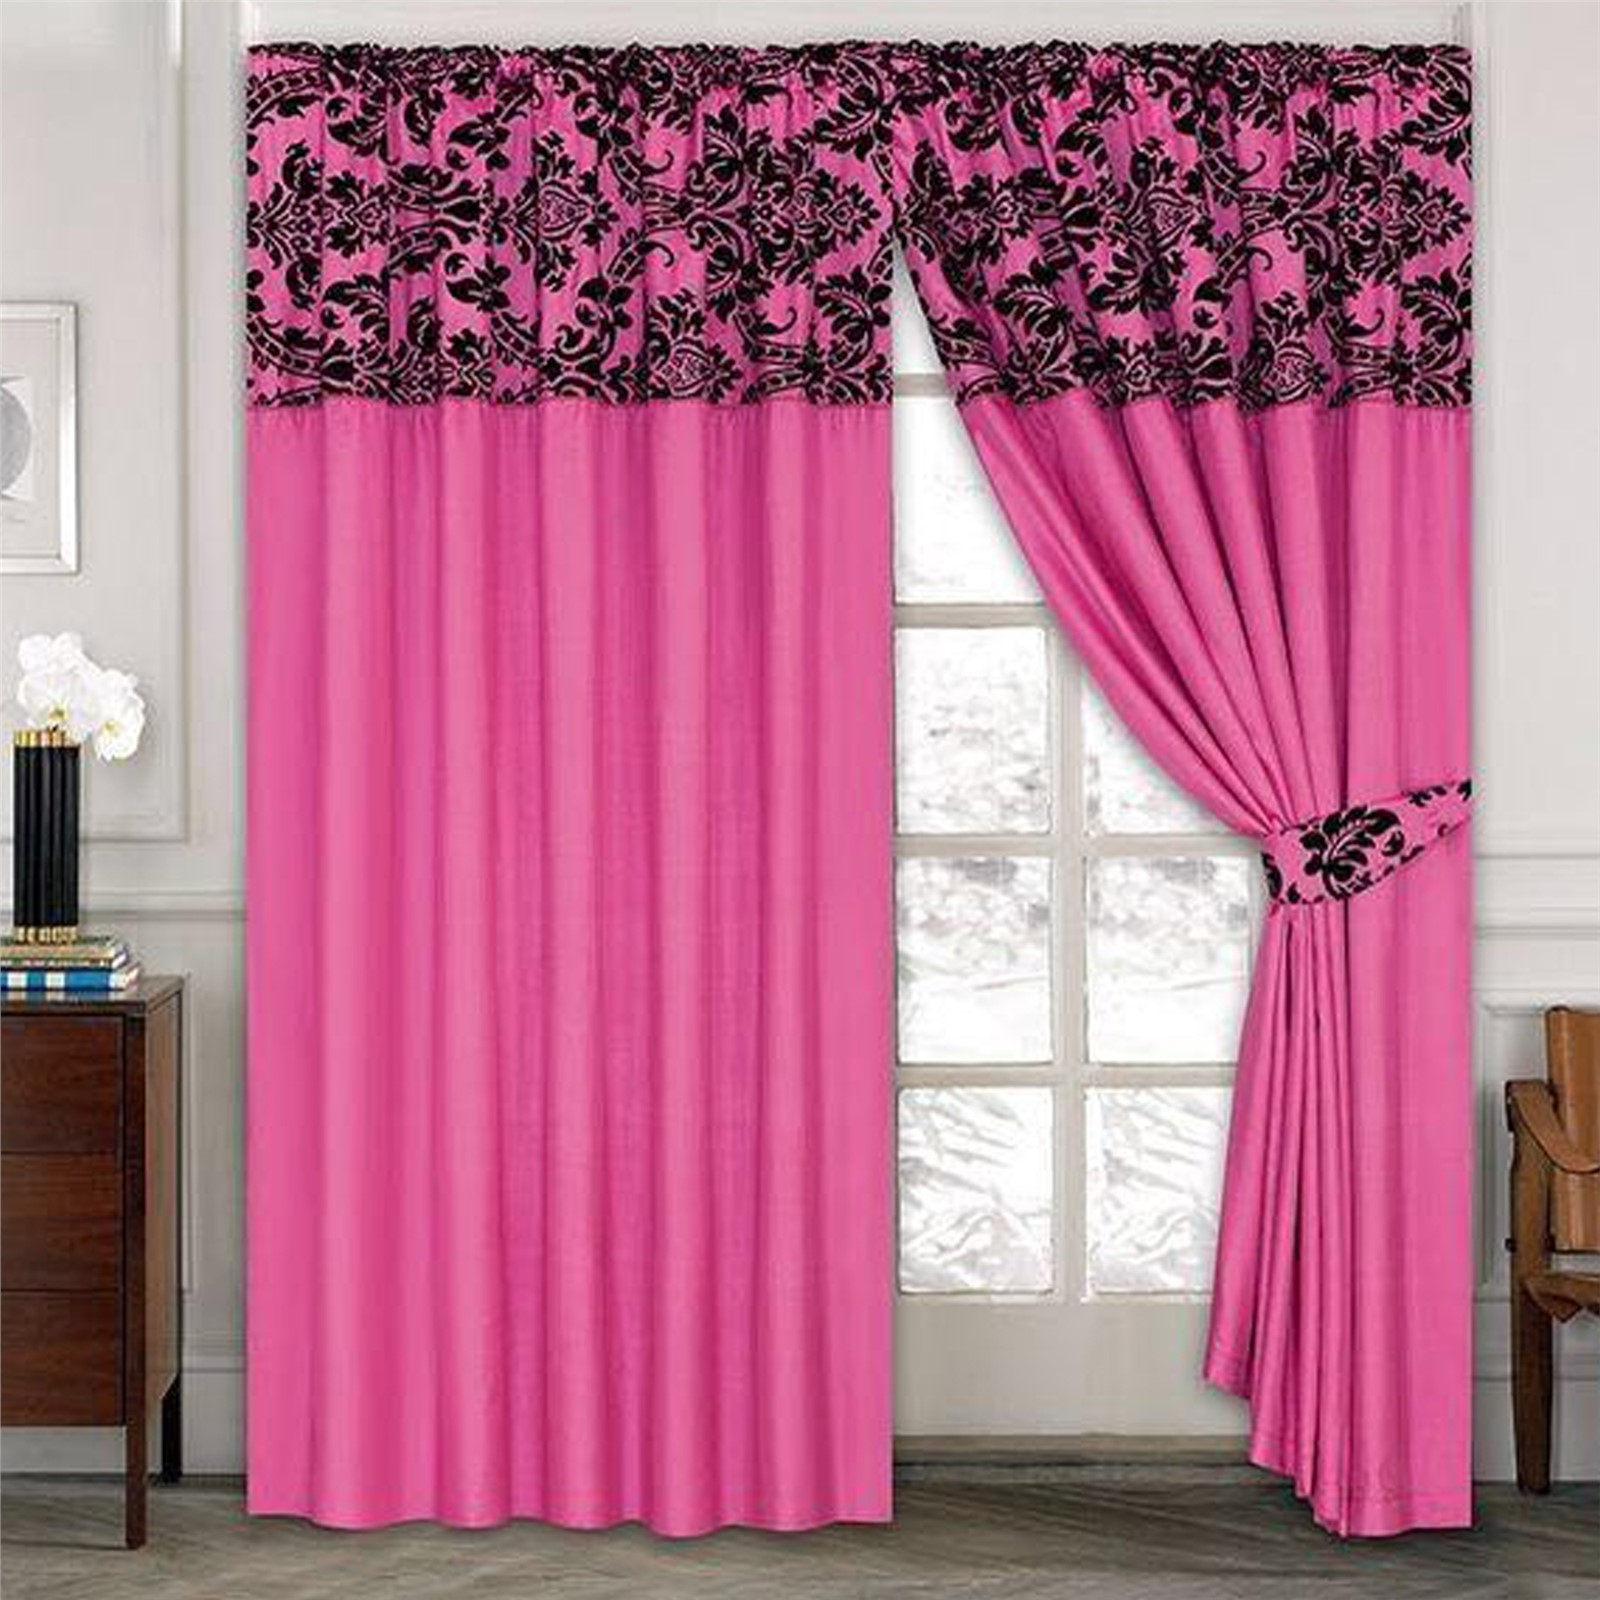 damask black curtains white drapes ideas windowpane new p sheer curtain ikea plaid check and